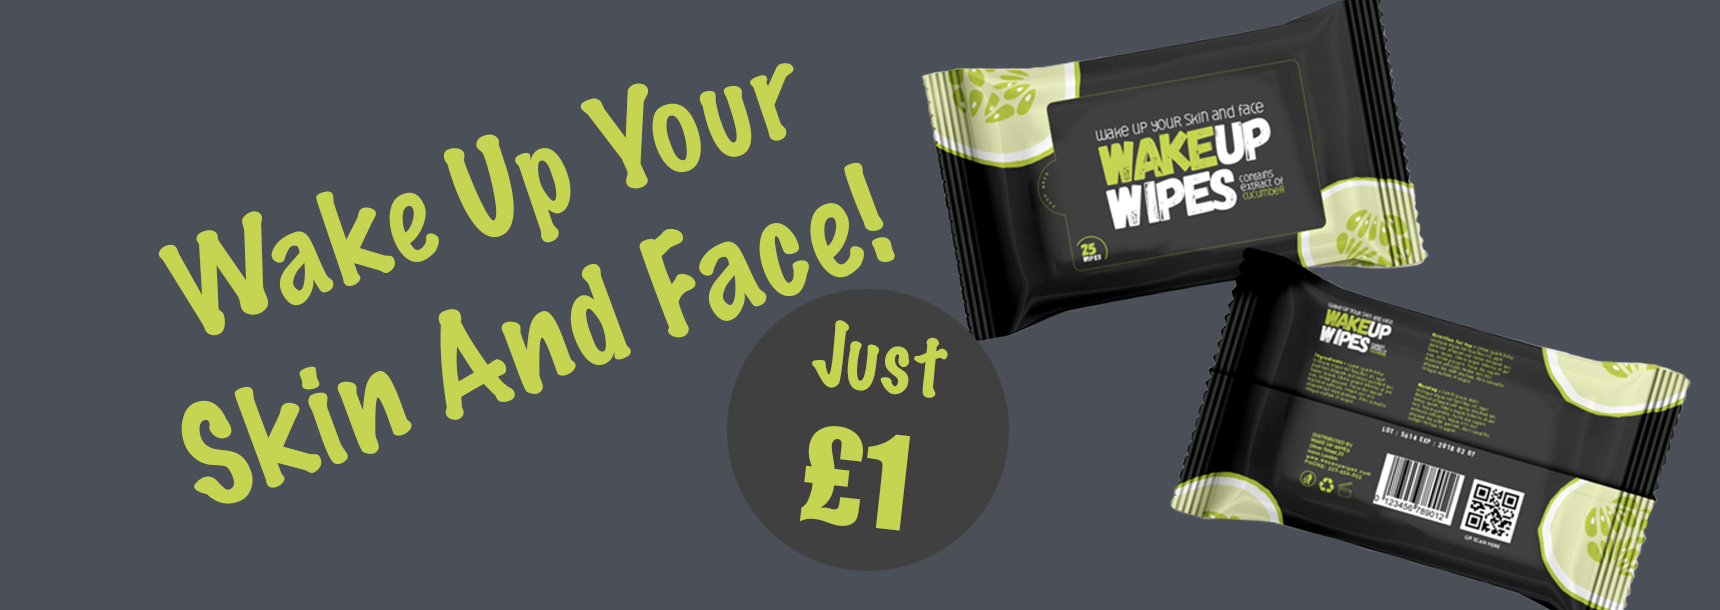 Wake Up Wipes